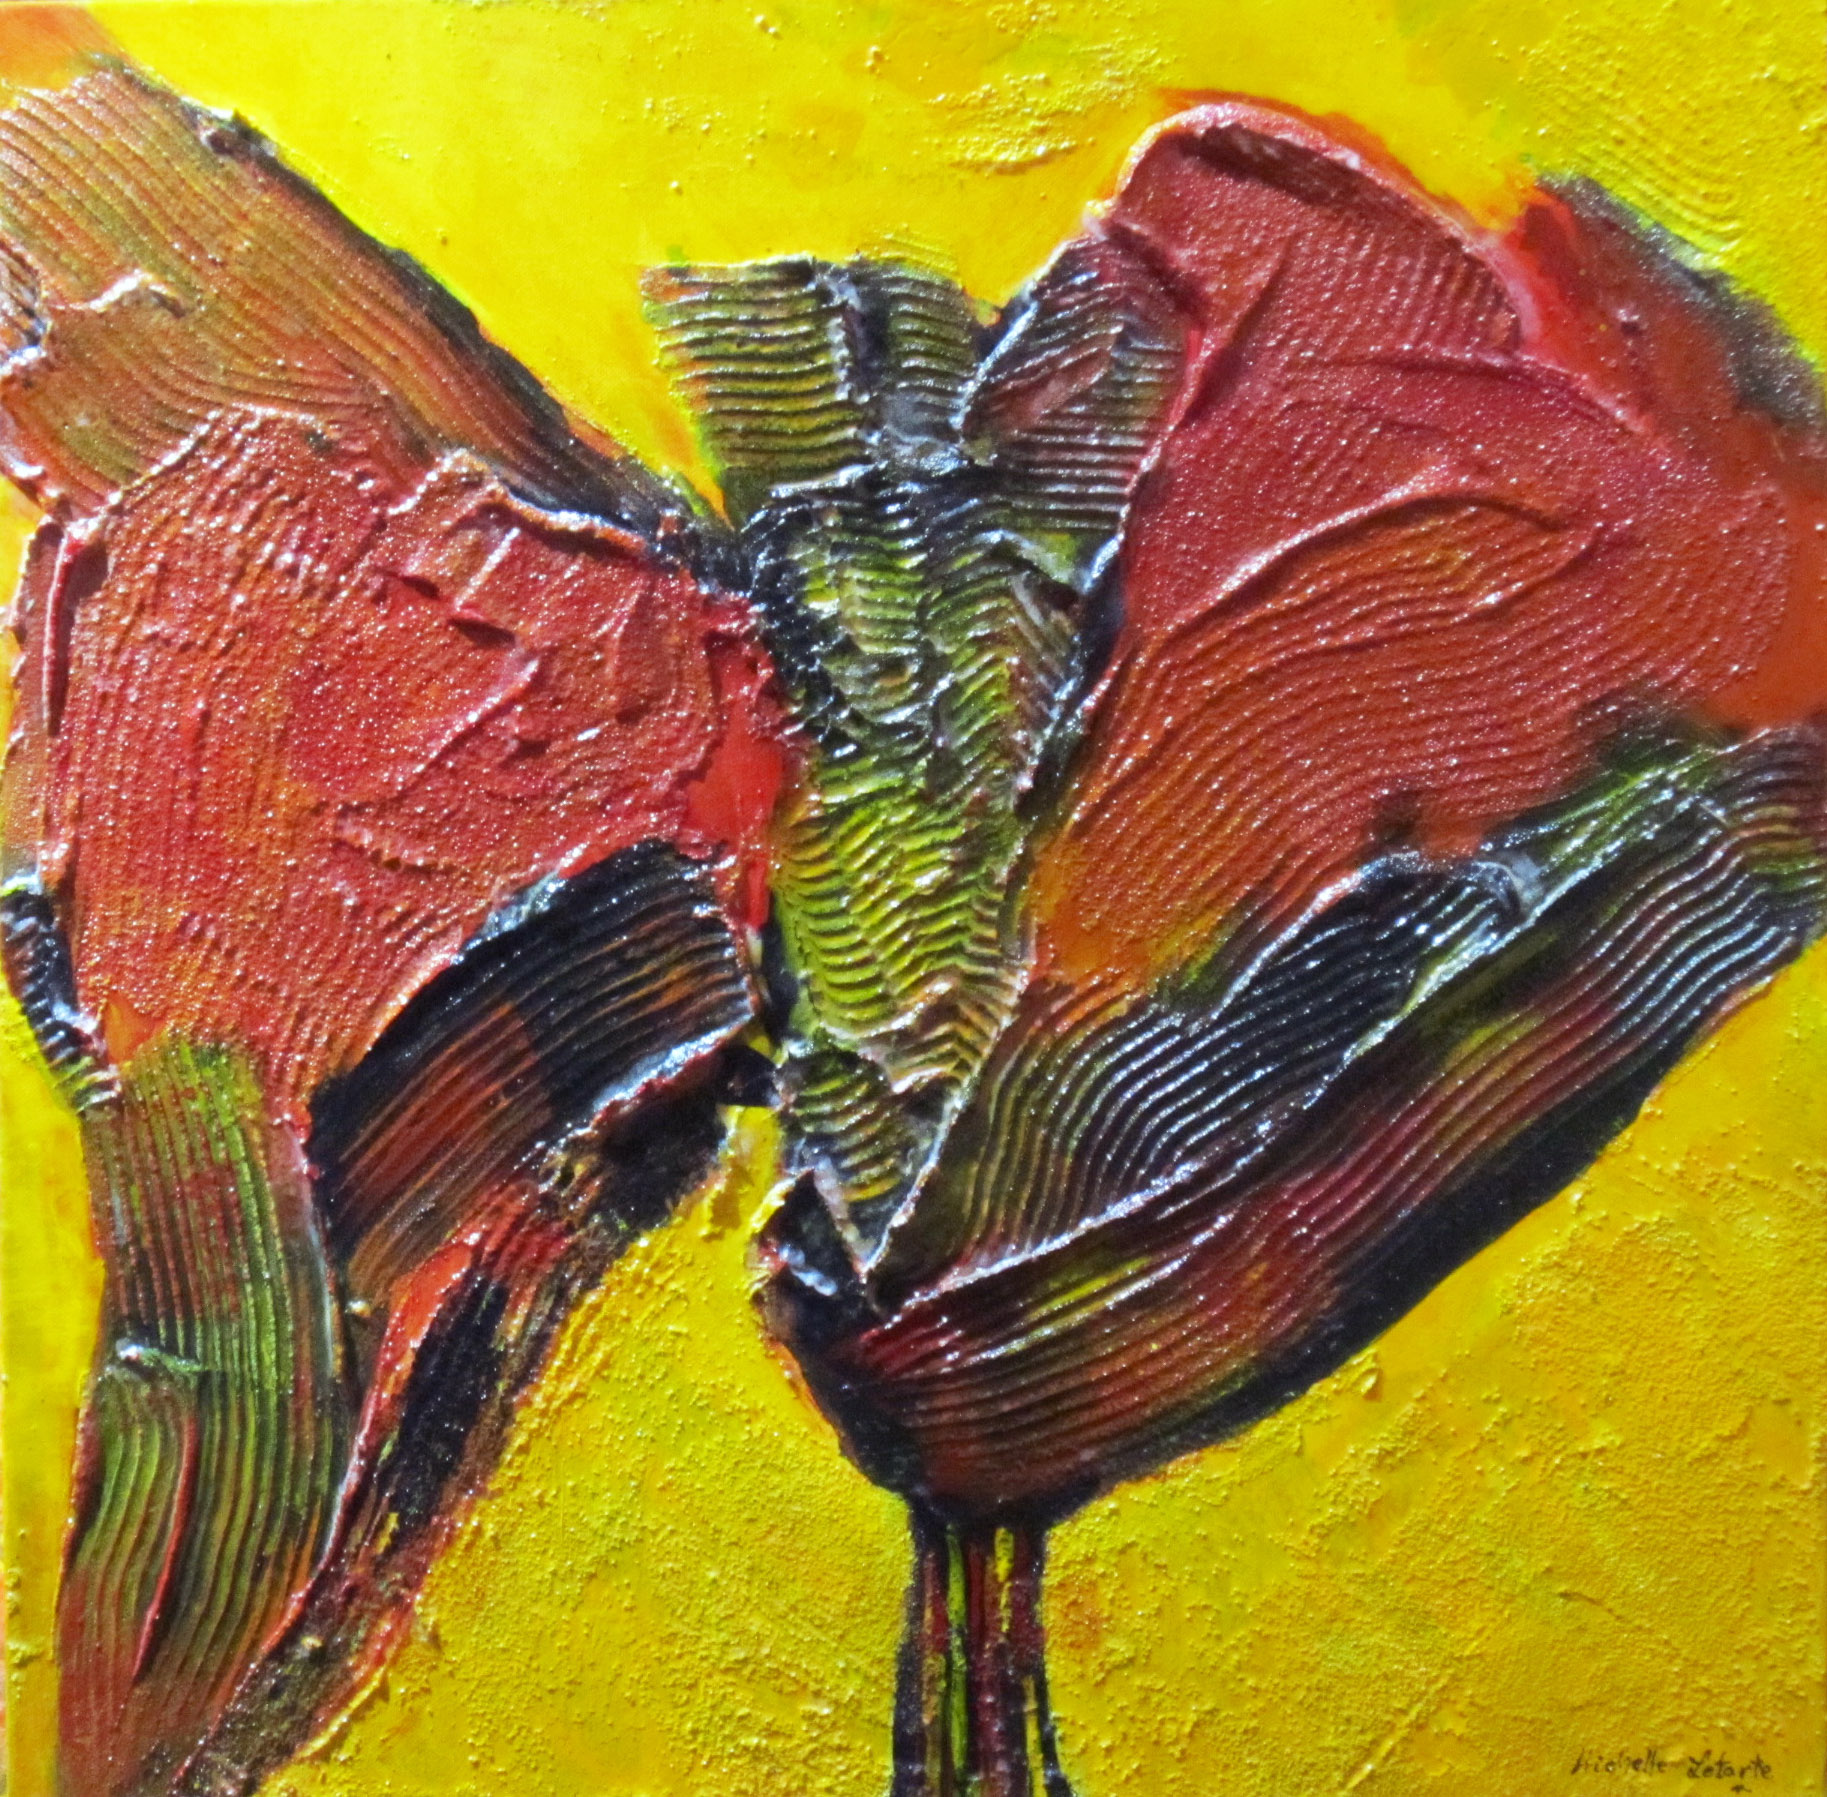 Cactus Flowers | mixed media on canvas | 24